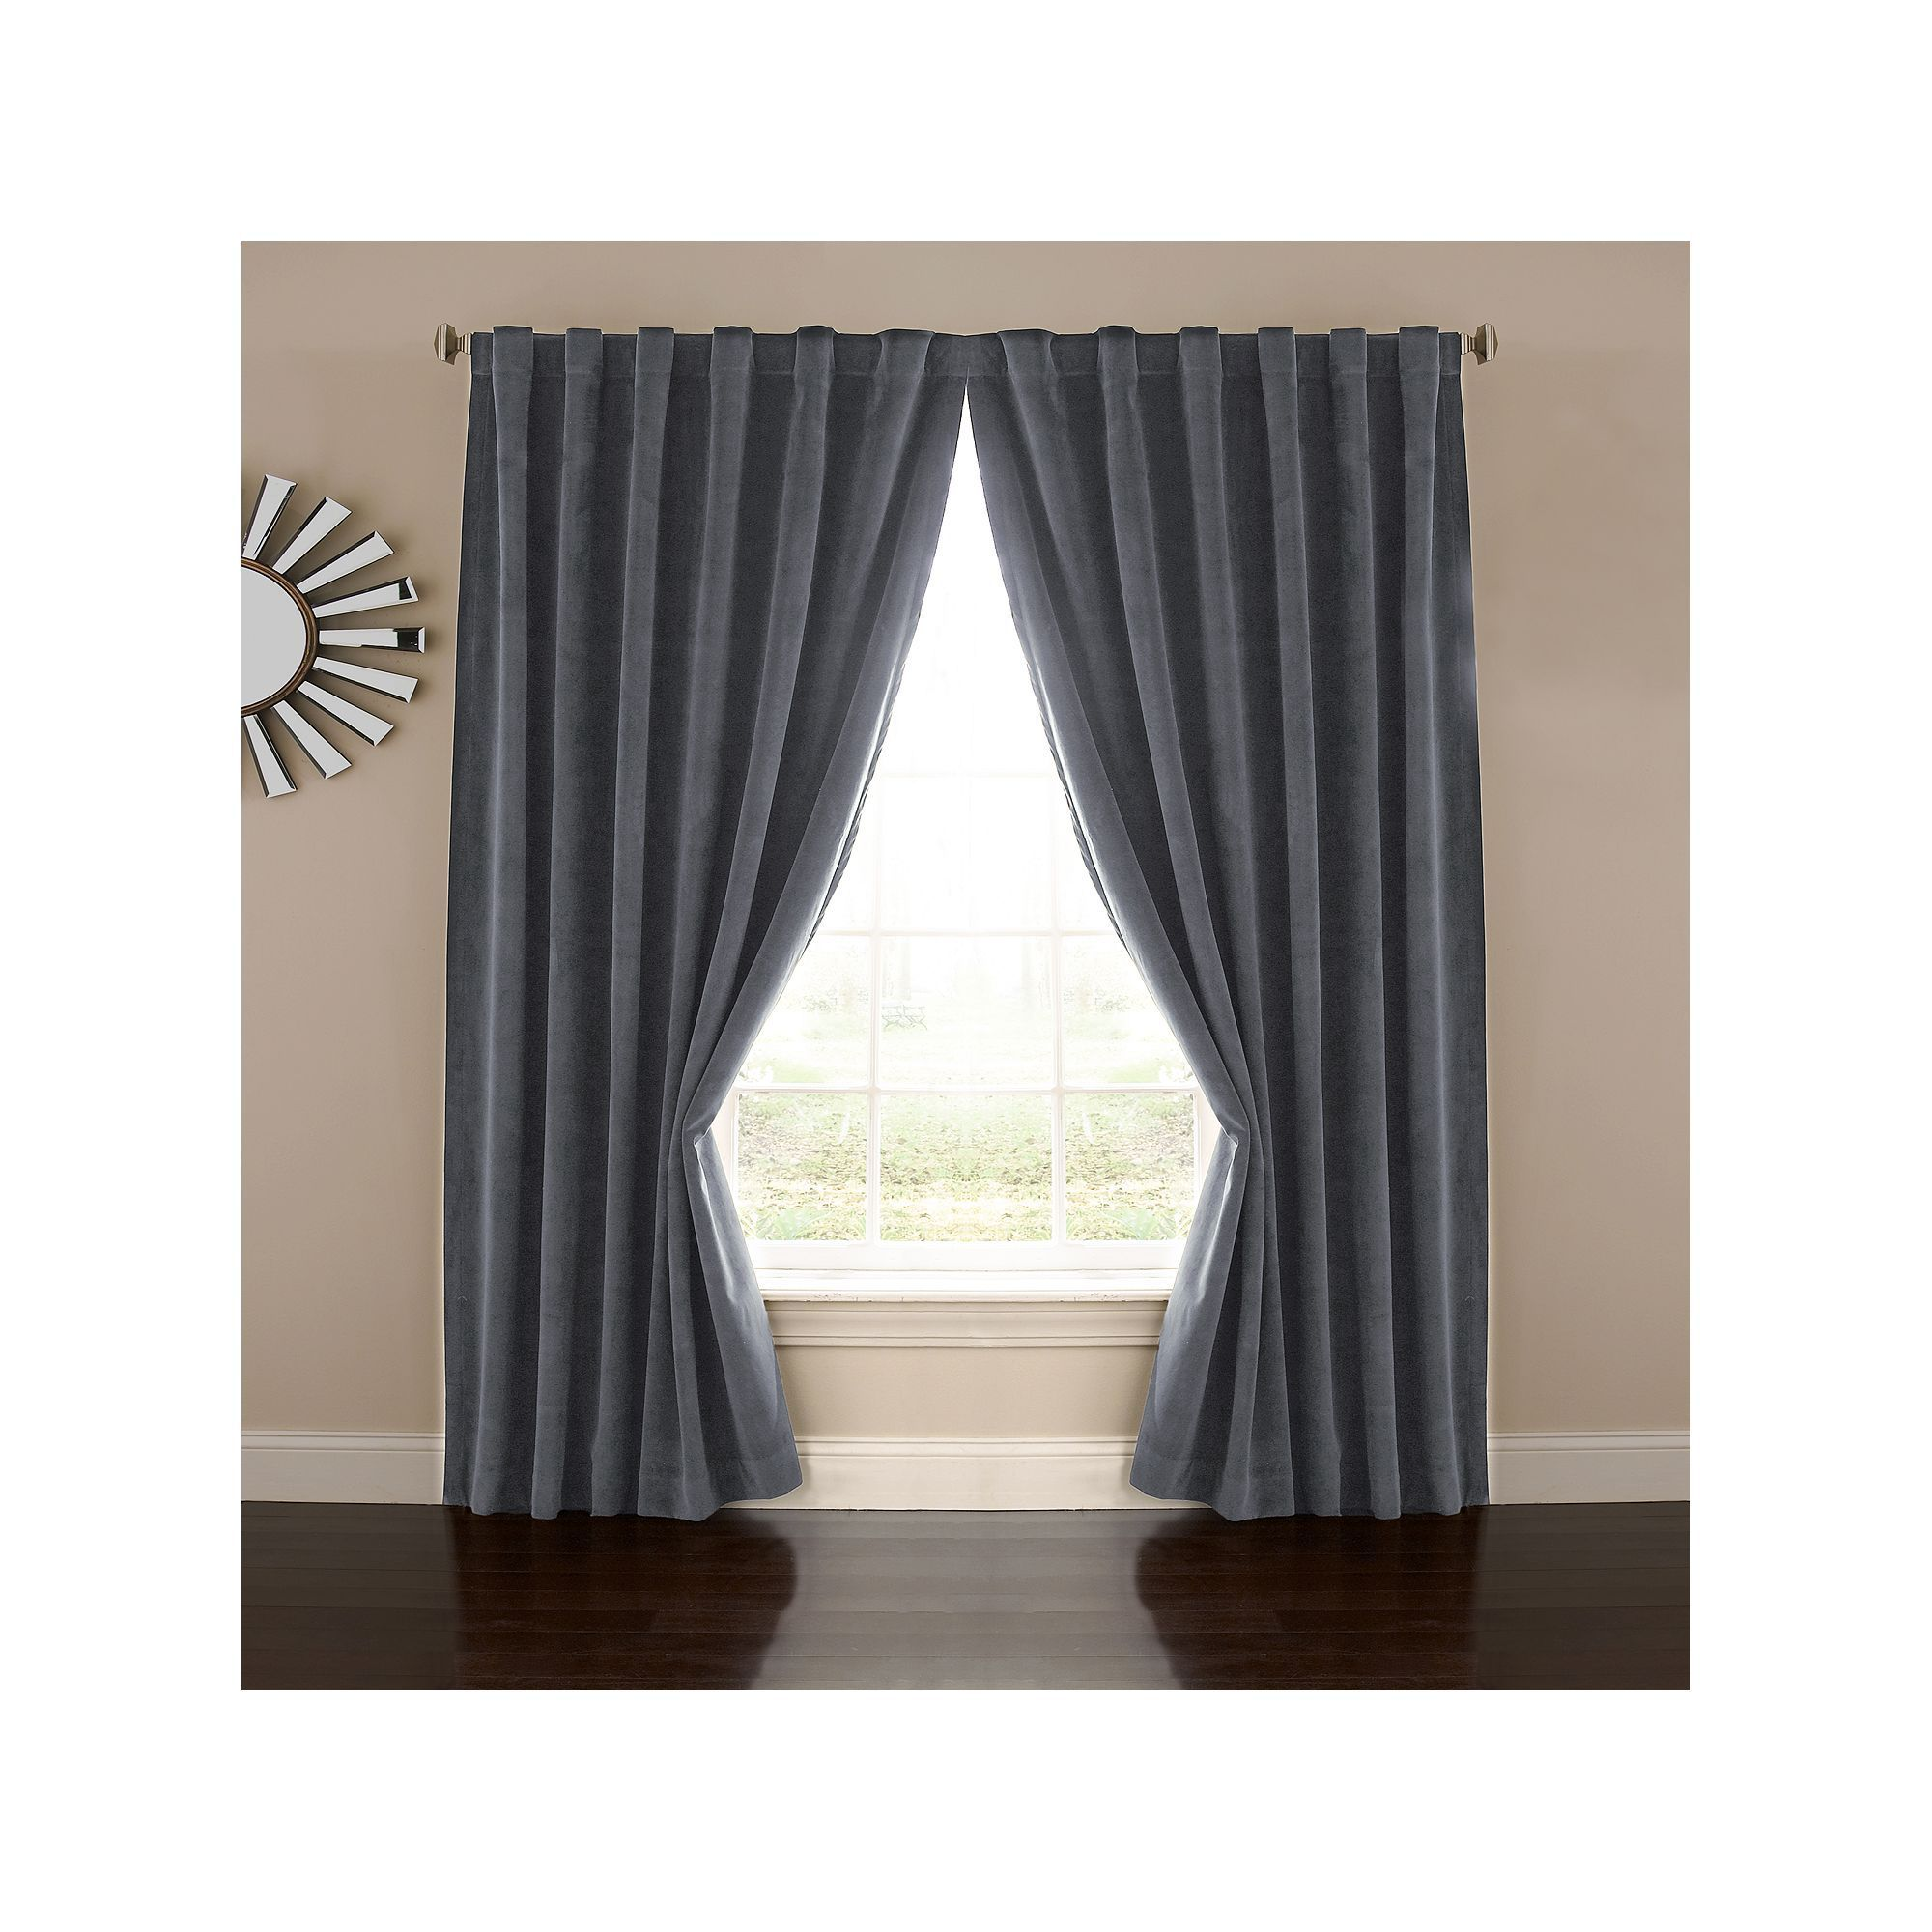 brown eyelet kitchen curtains swayam in curtain home window dp amazon silk blackout